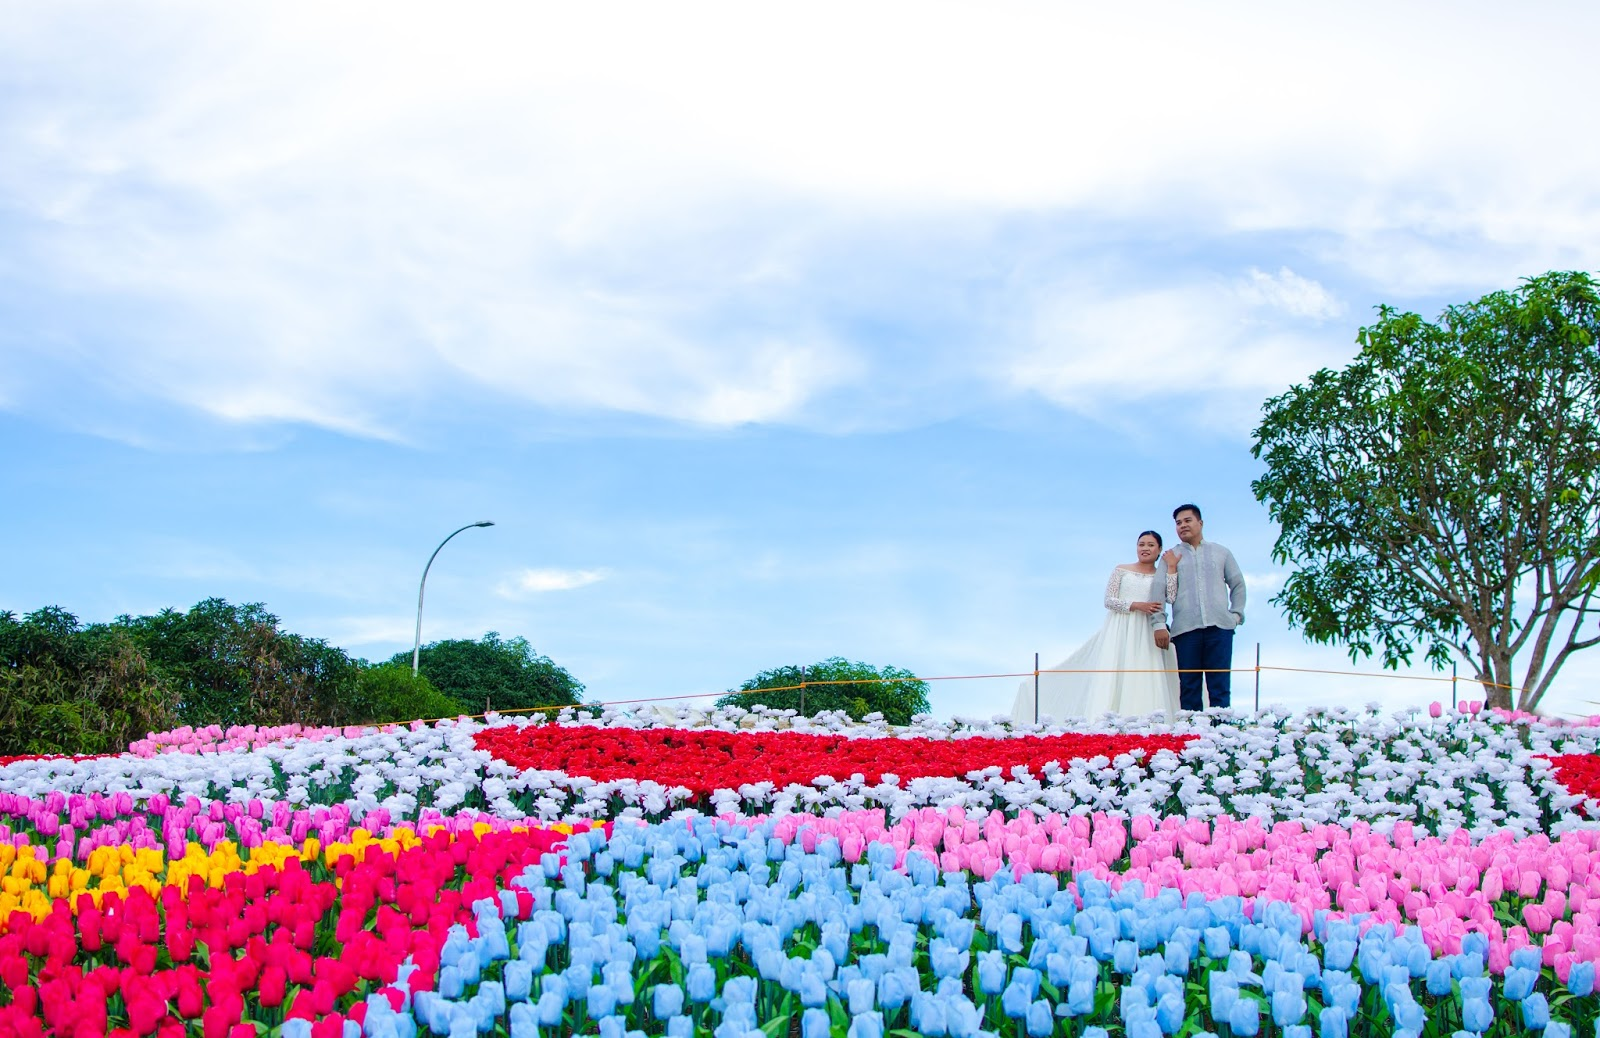 No borders 20 000 led roses and tulips grow in bohol town for Jardin necitas